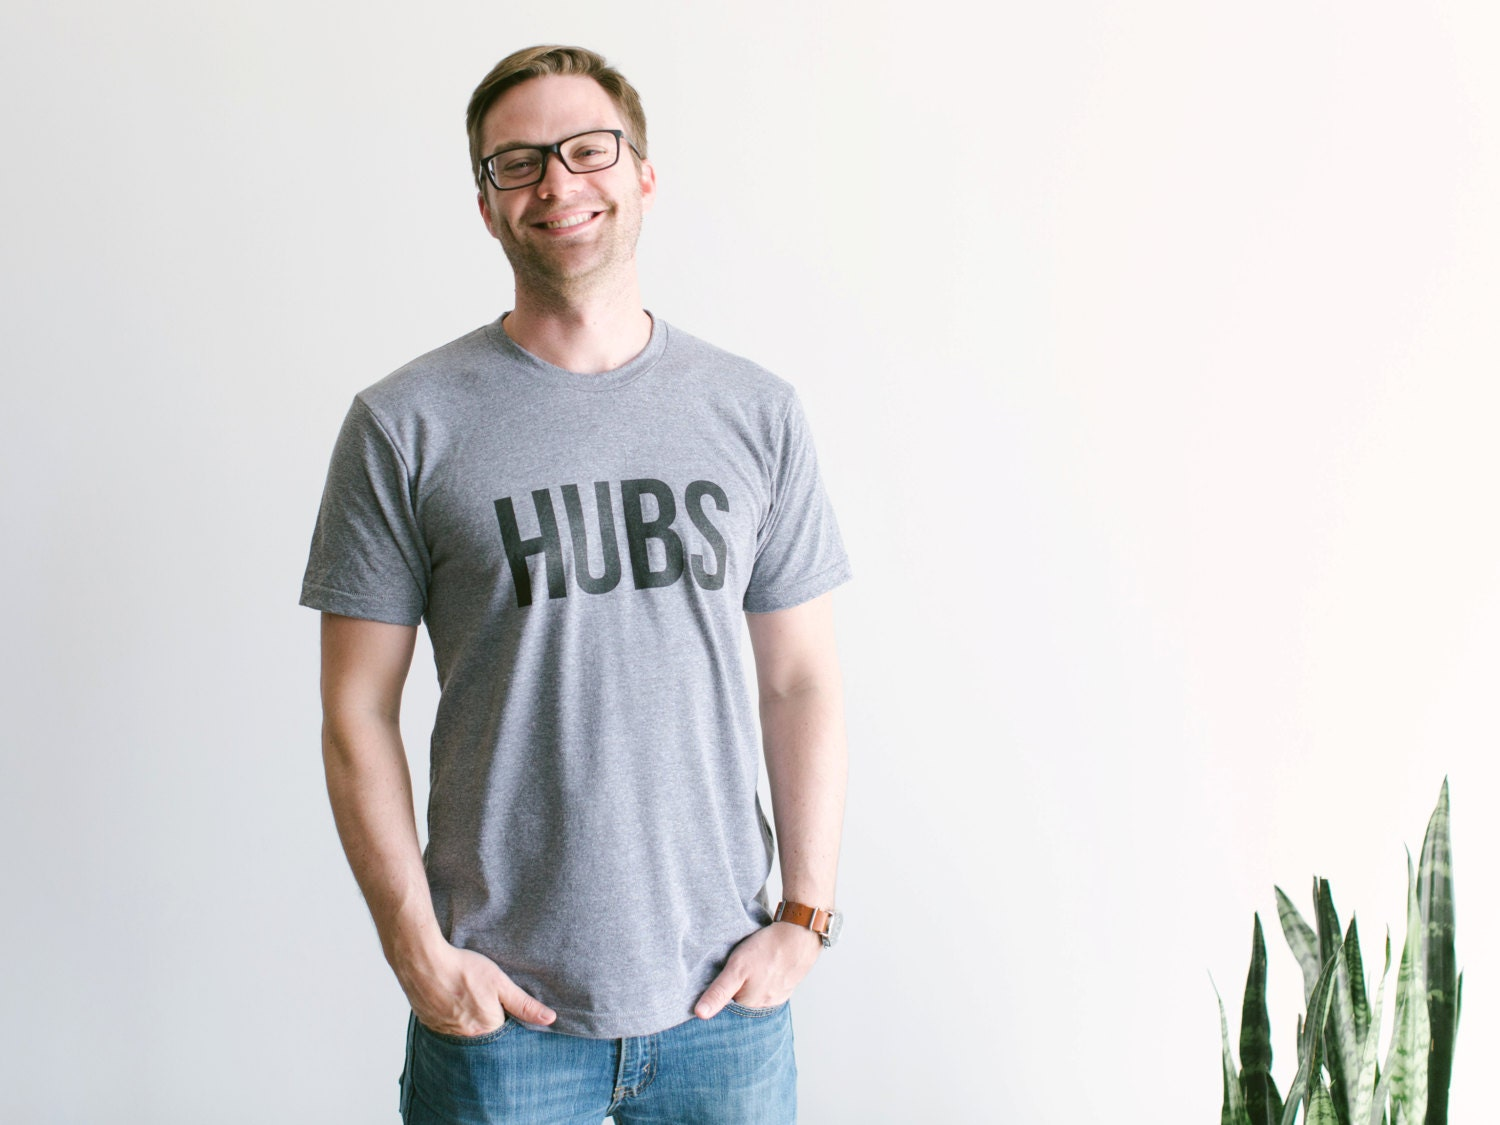 Hubs T Shirt Husband Shirt Hand Lettered Typographic